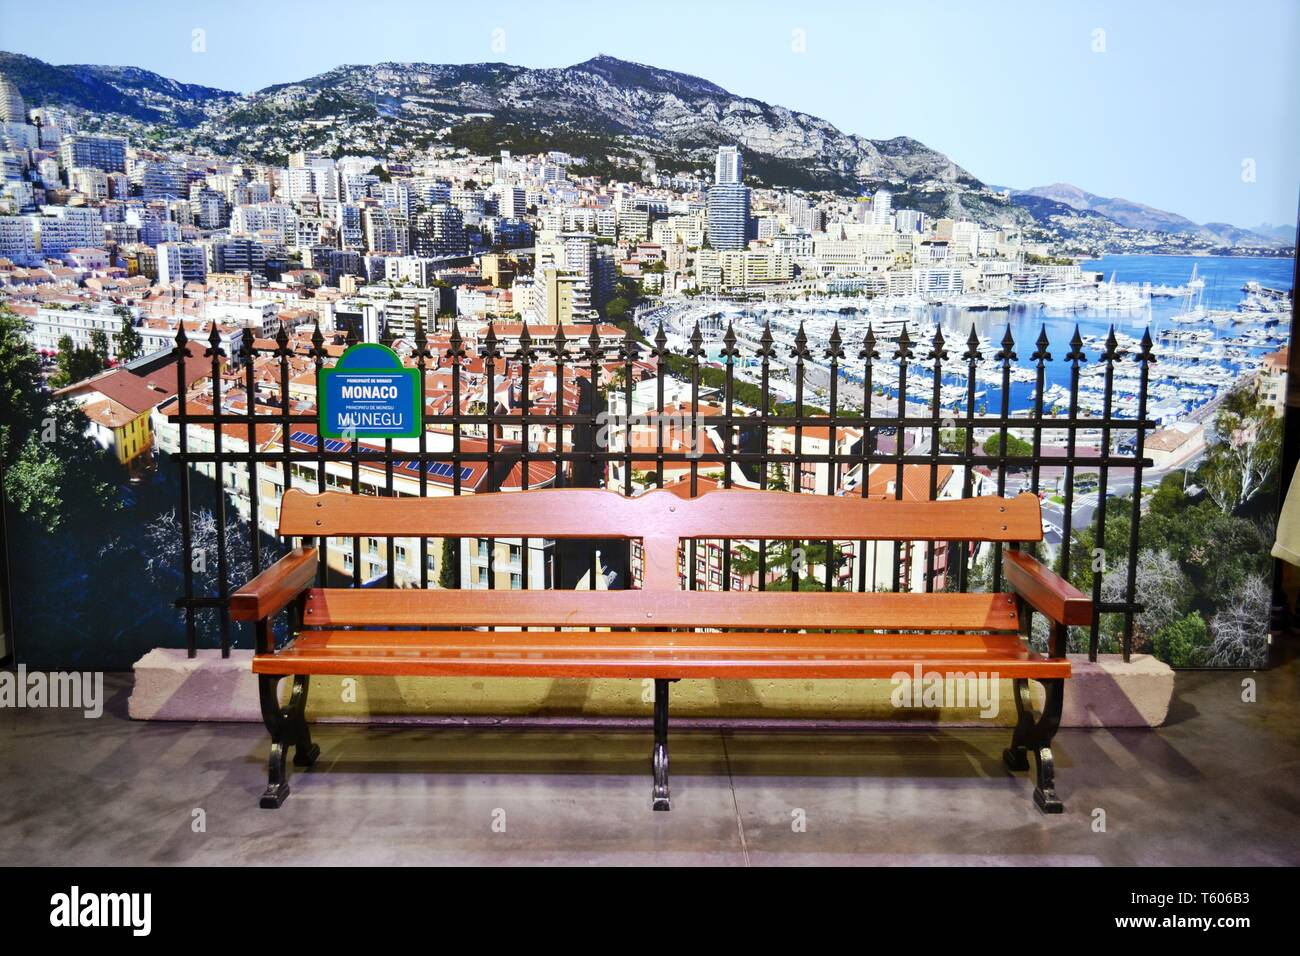 Milan/Italy - October 5, 2015 - Close-up view to a brown wooden bench and a large panoramic city photo at the Monaco pavilion of the EXPO Milano 2015. - Stock Image